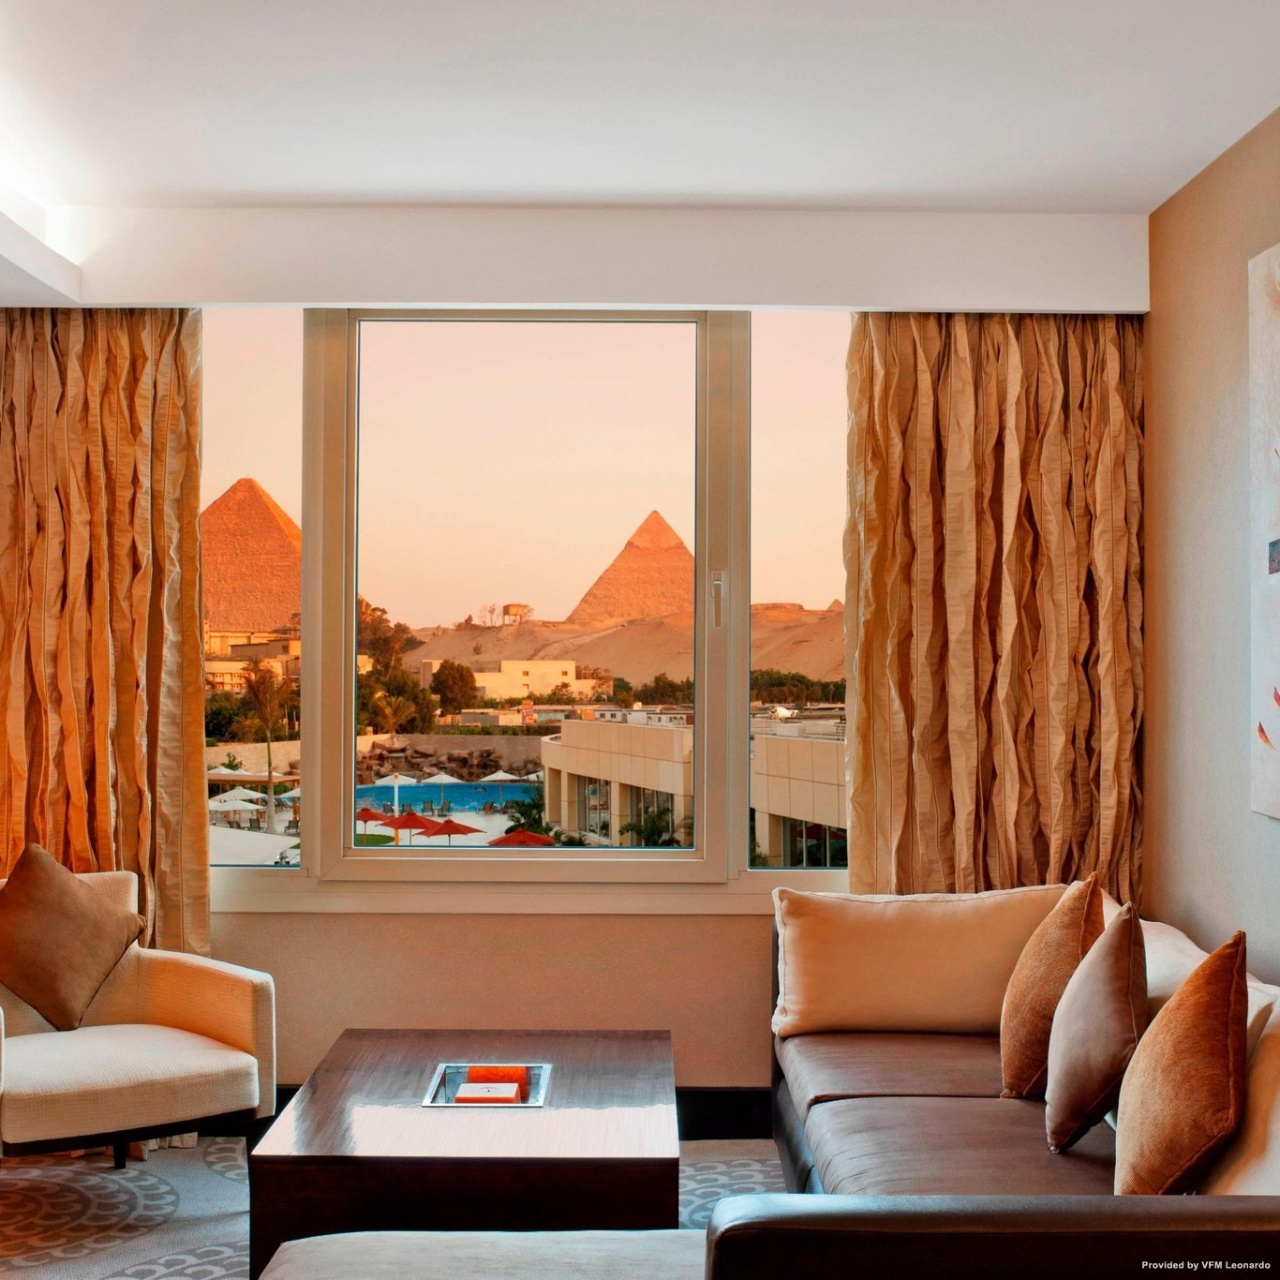 Le Méridien Pyramids Hotel Spa Egypt At Hrs With Free Services